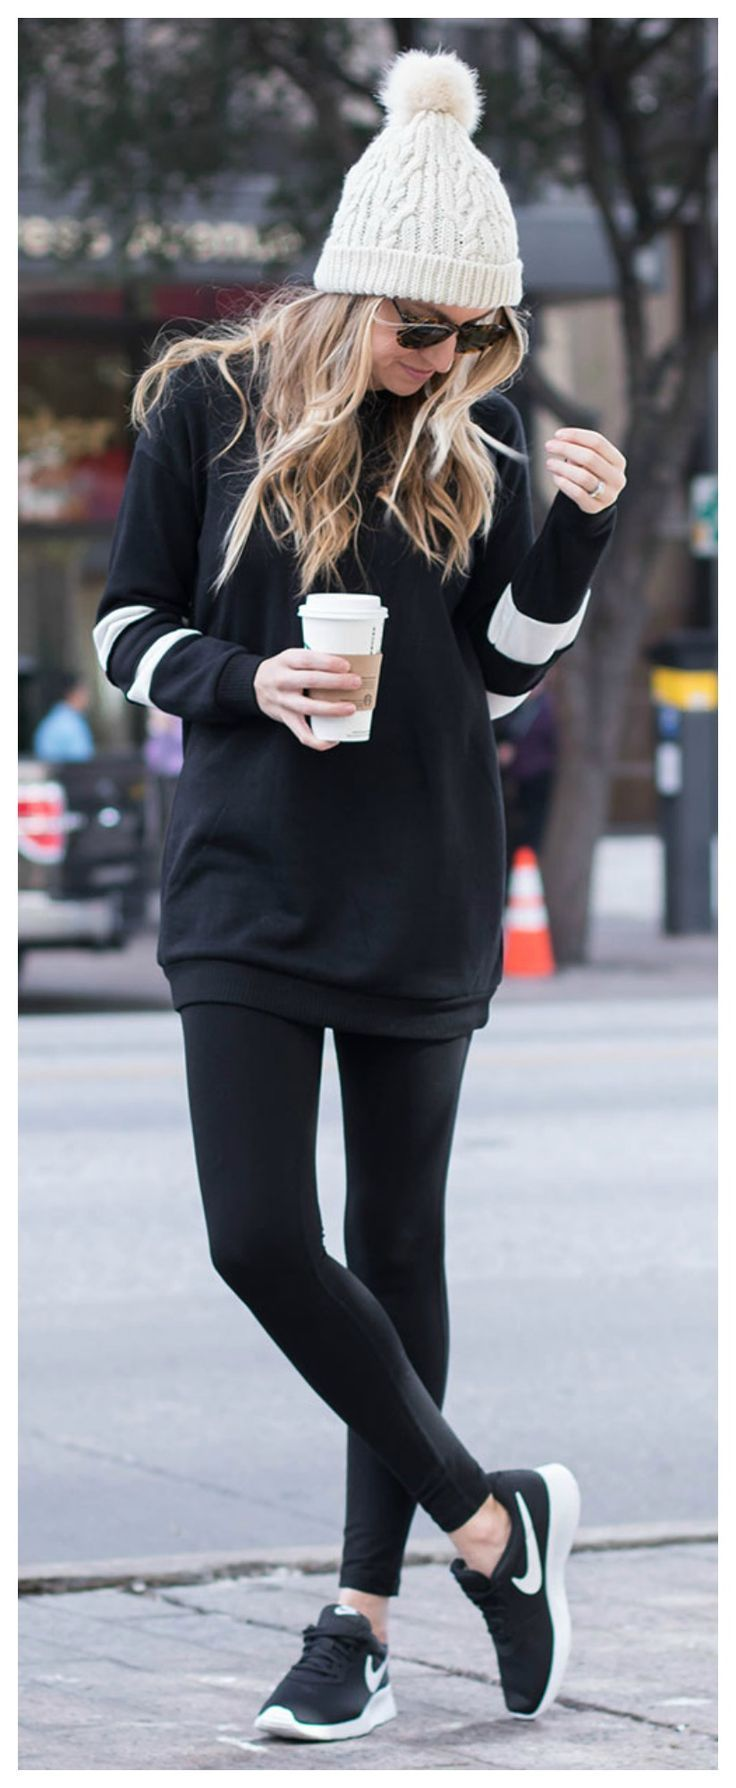 To acquire Tips3 Fashion cozy cute winter outfit ideas pictures trends